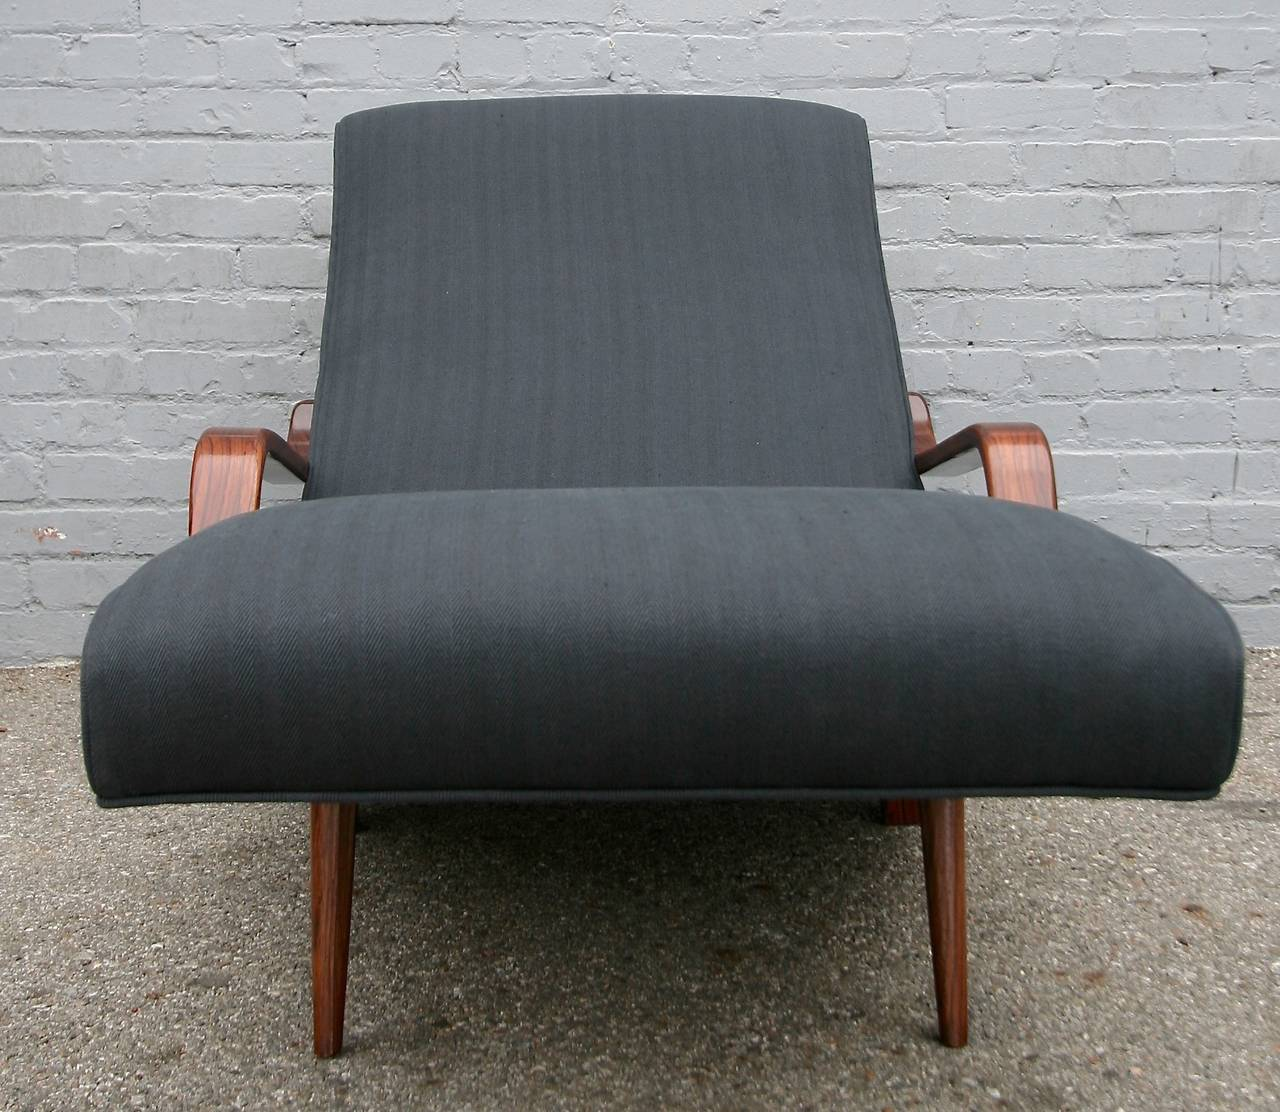 Scapinelli 1960s Brazilian Rosewood Chaise Longue For Sale 2